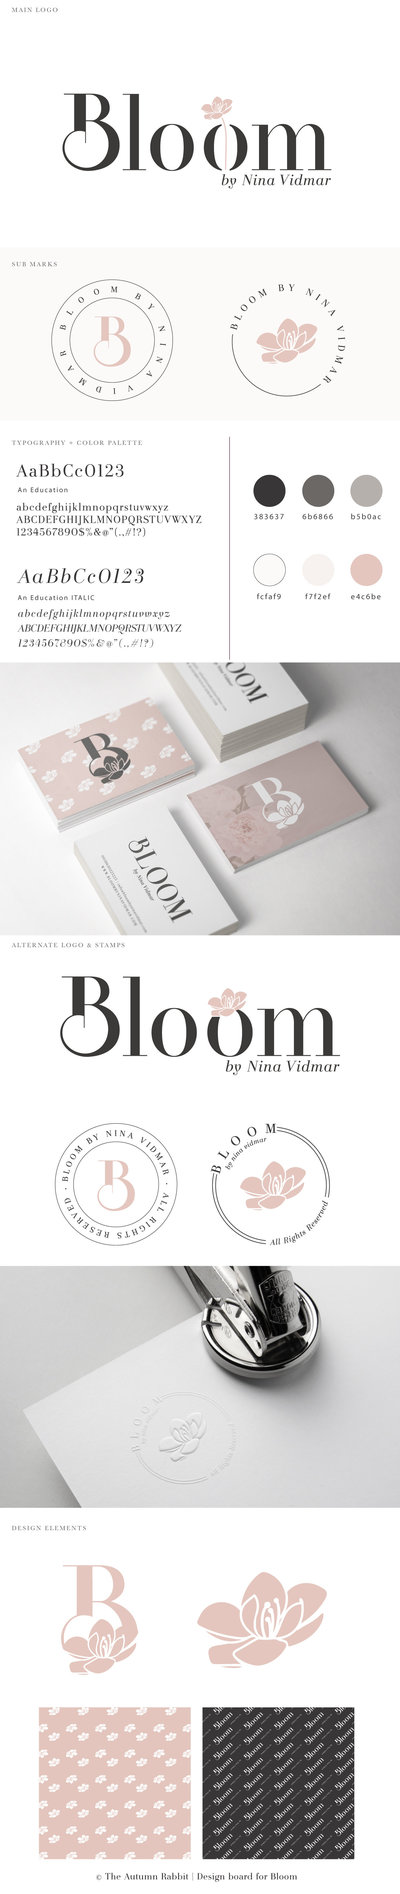 Bloom-Final-Branding-Board